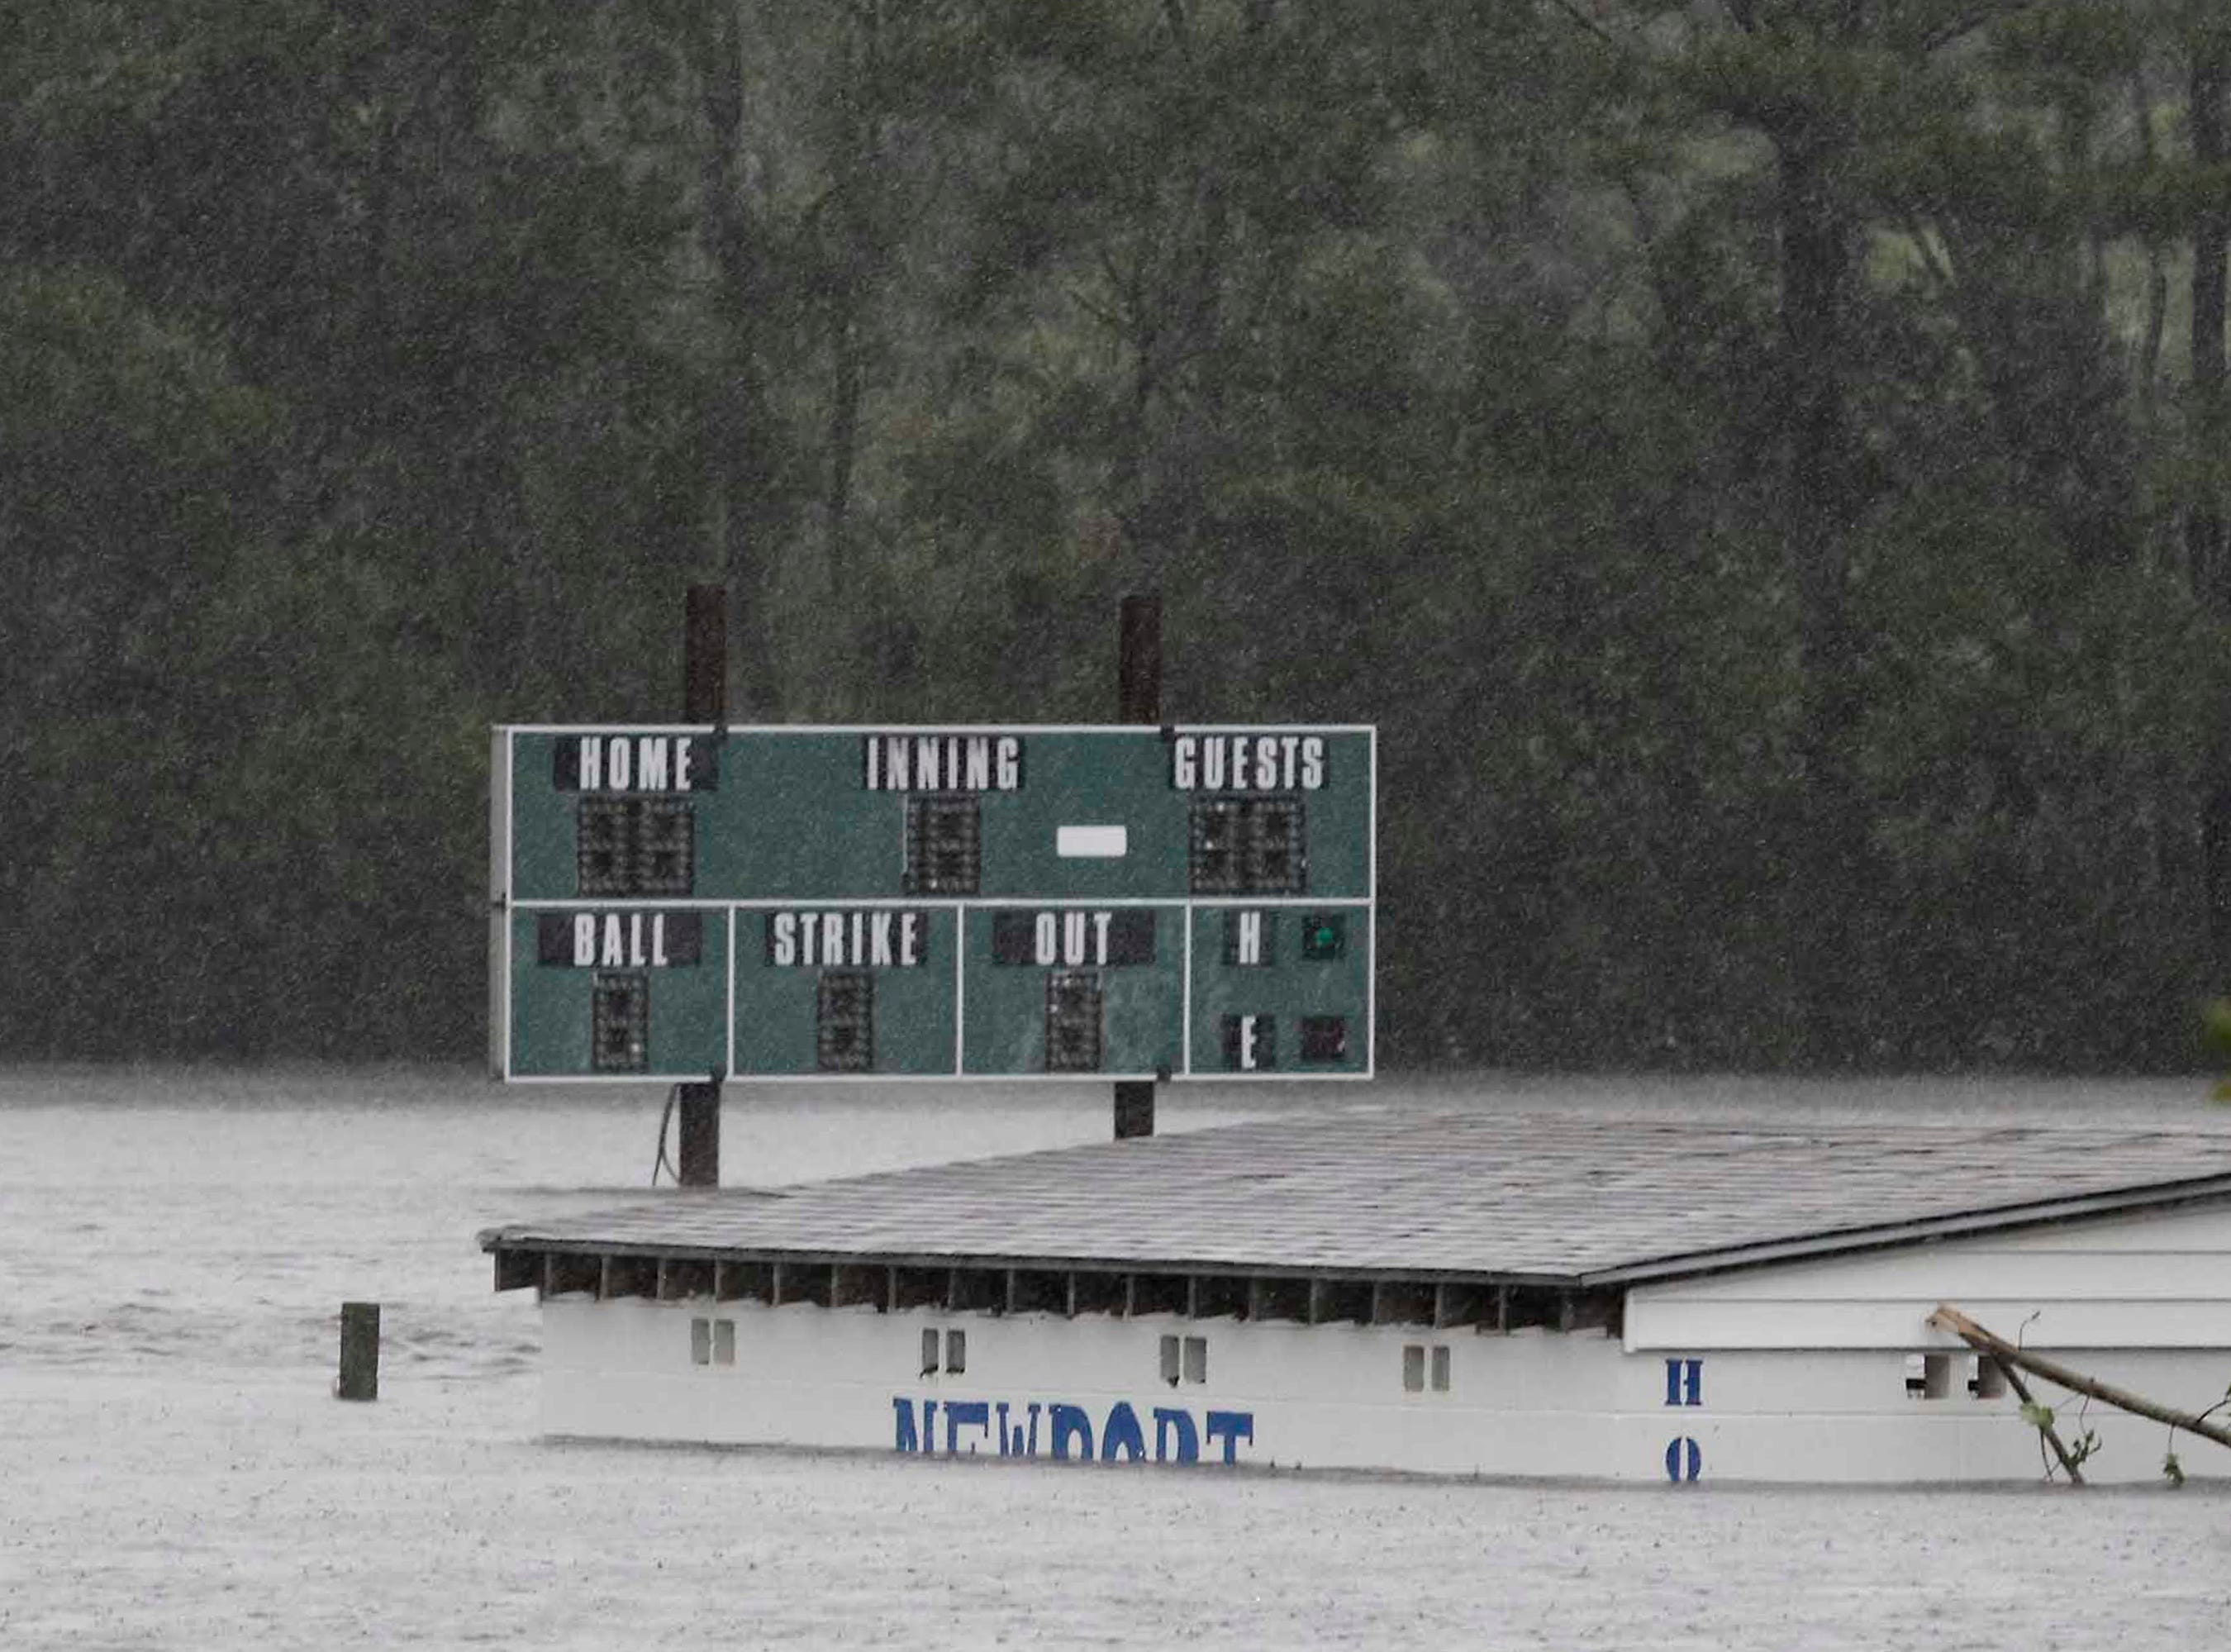 A baseball field on Mill Creek Road is filled with floodwaters after Hurricane Florence hit Newport N.C., Saturday, Sept. 15, 2018.